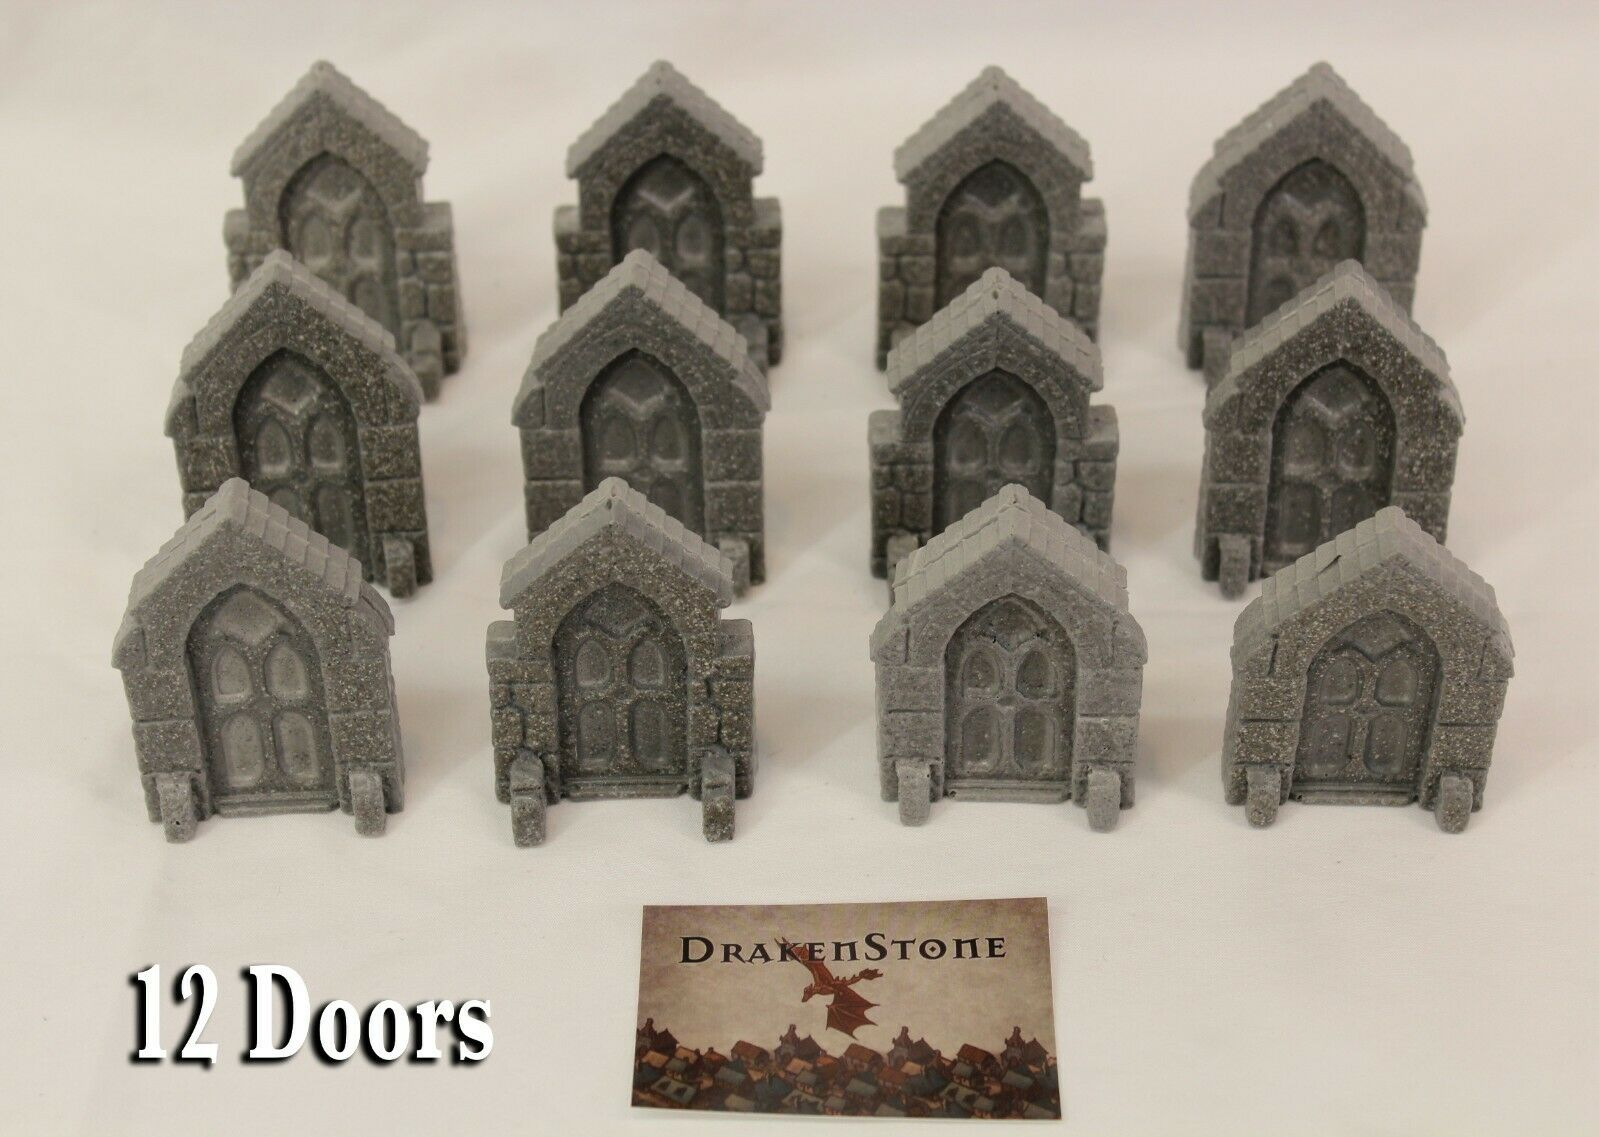 DrakenStone Dungeon Doors resin D&D pathfinder rpg terrain dwarven forge mini